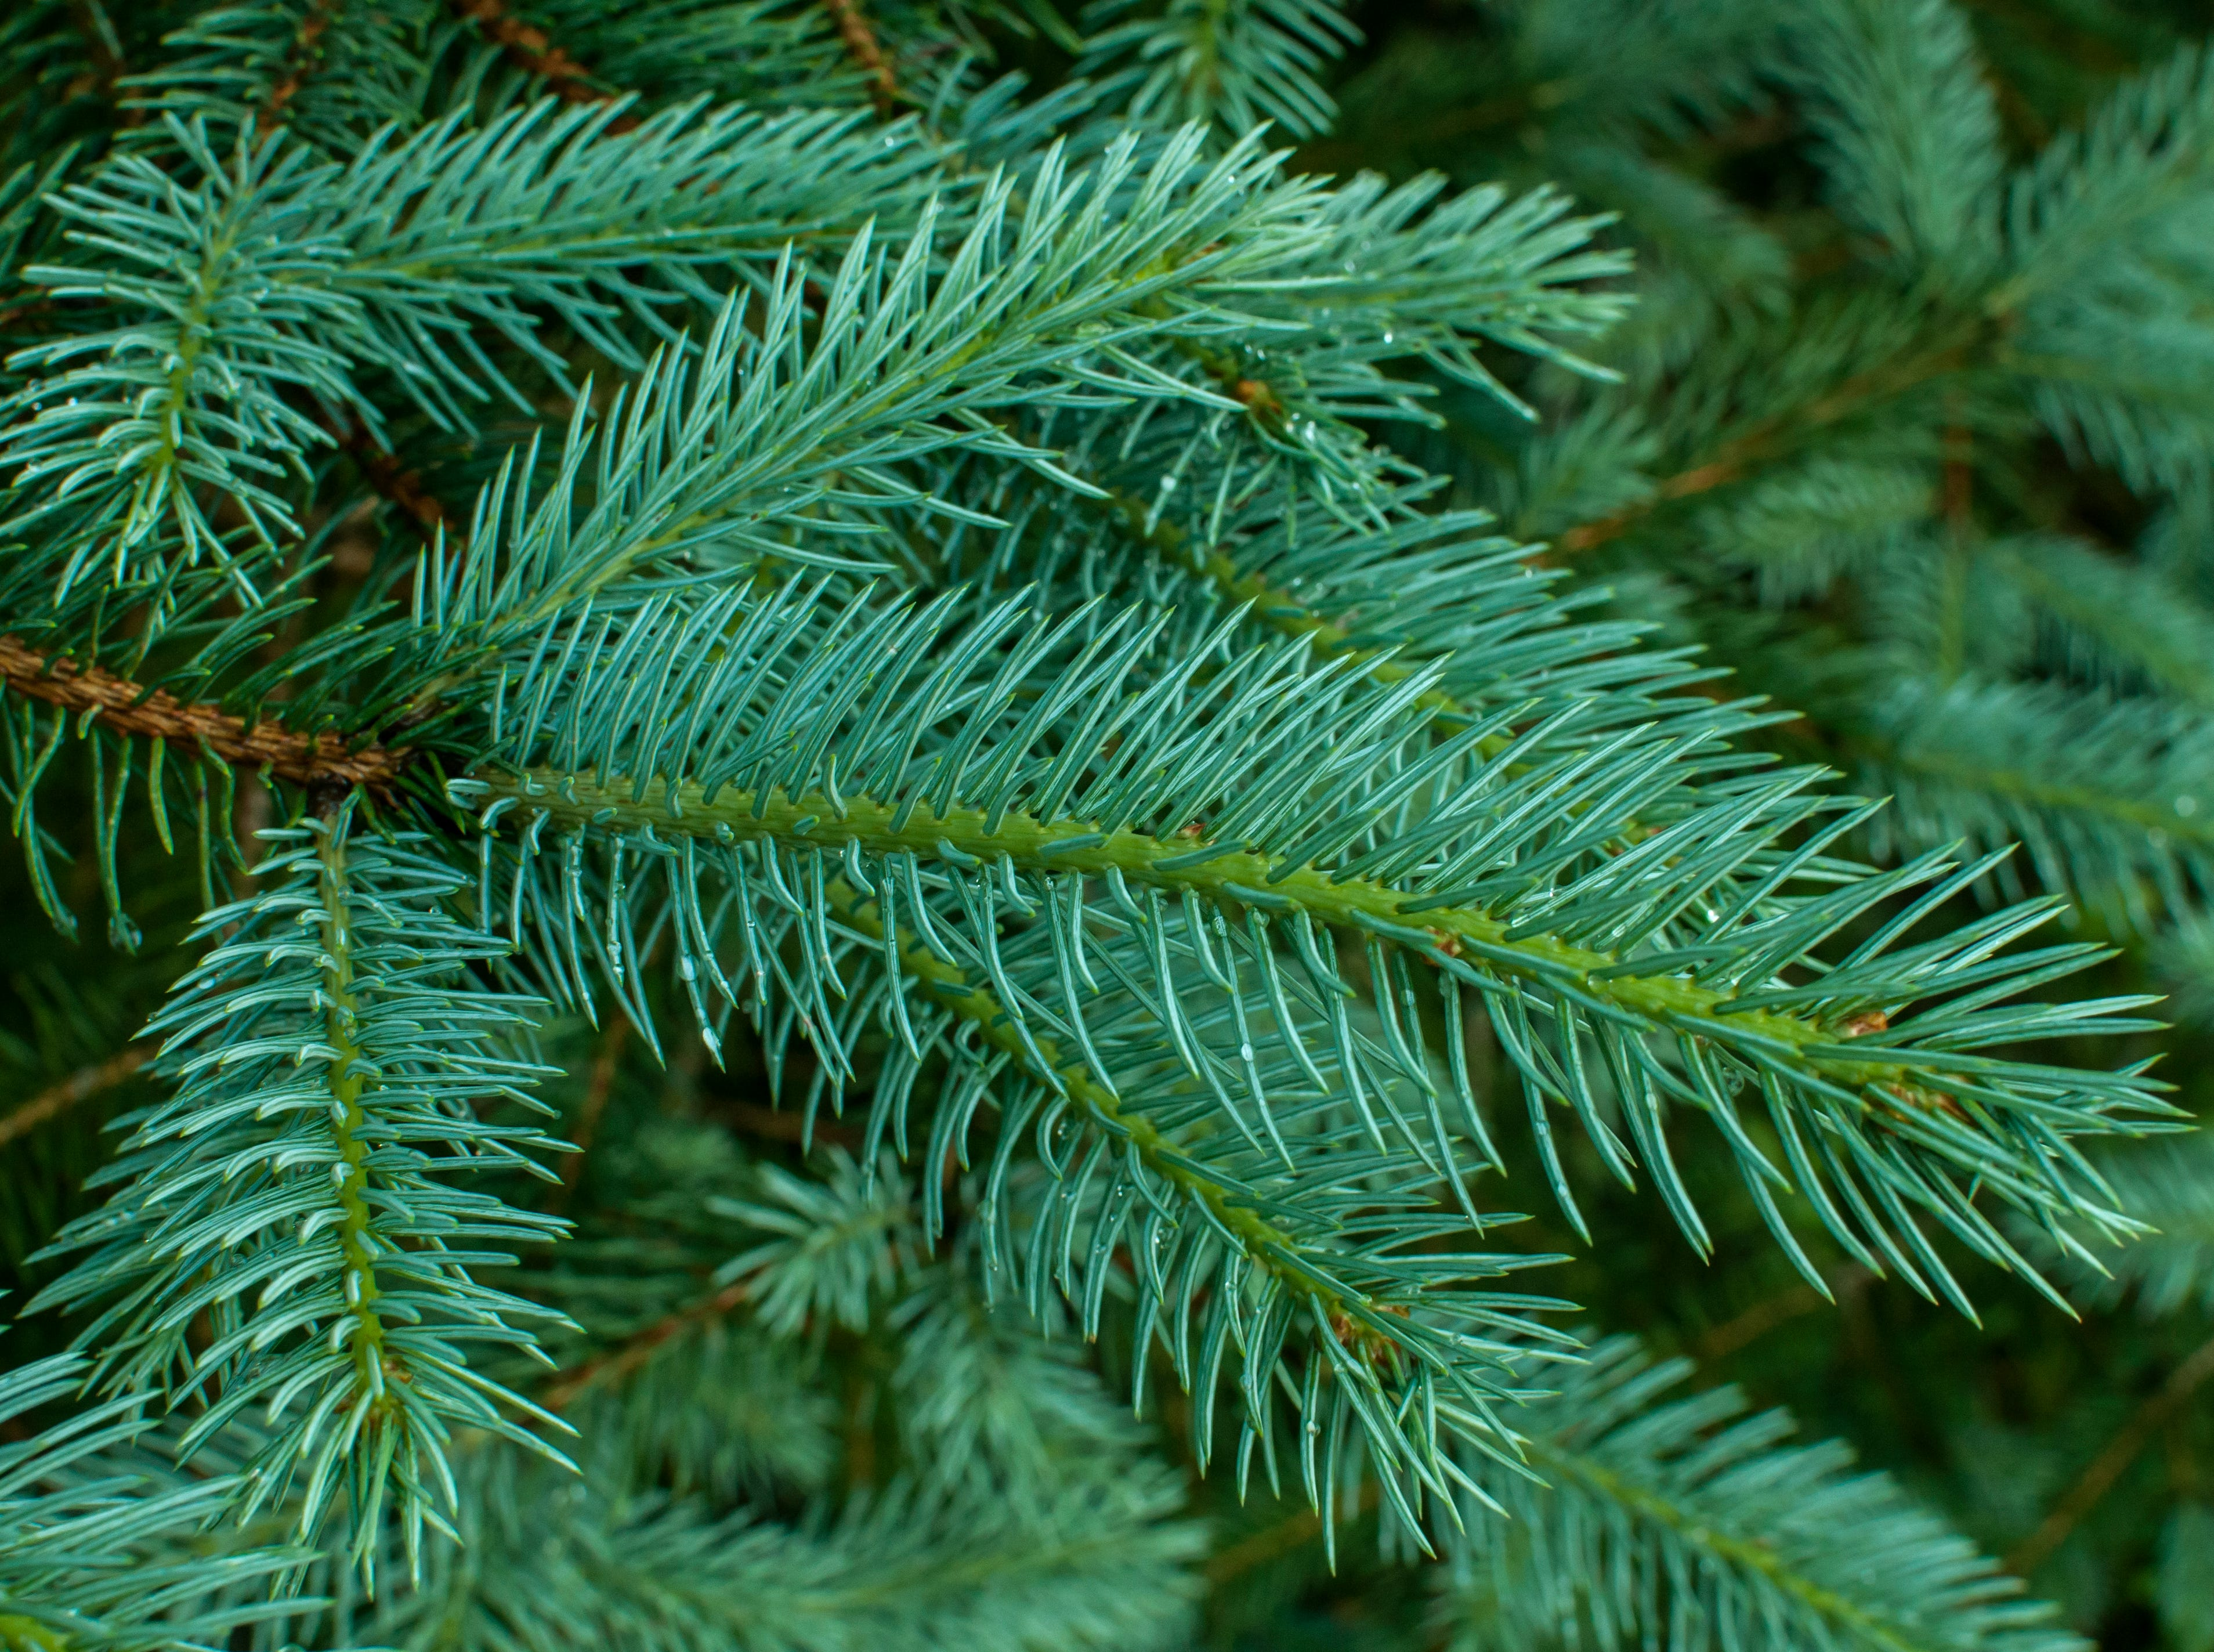 White spruce branch with fresh leaves closeup.